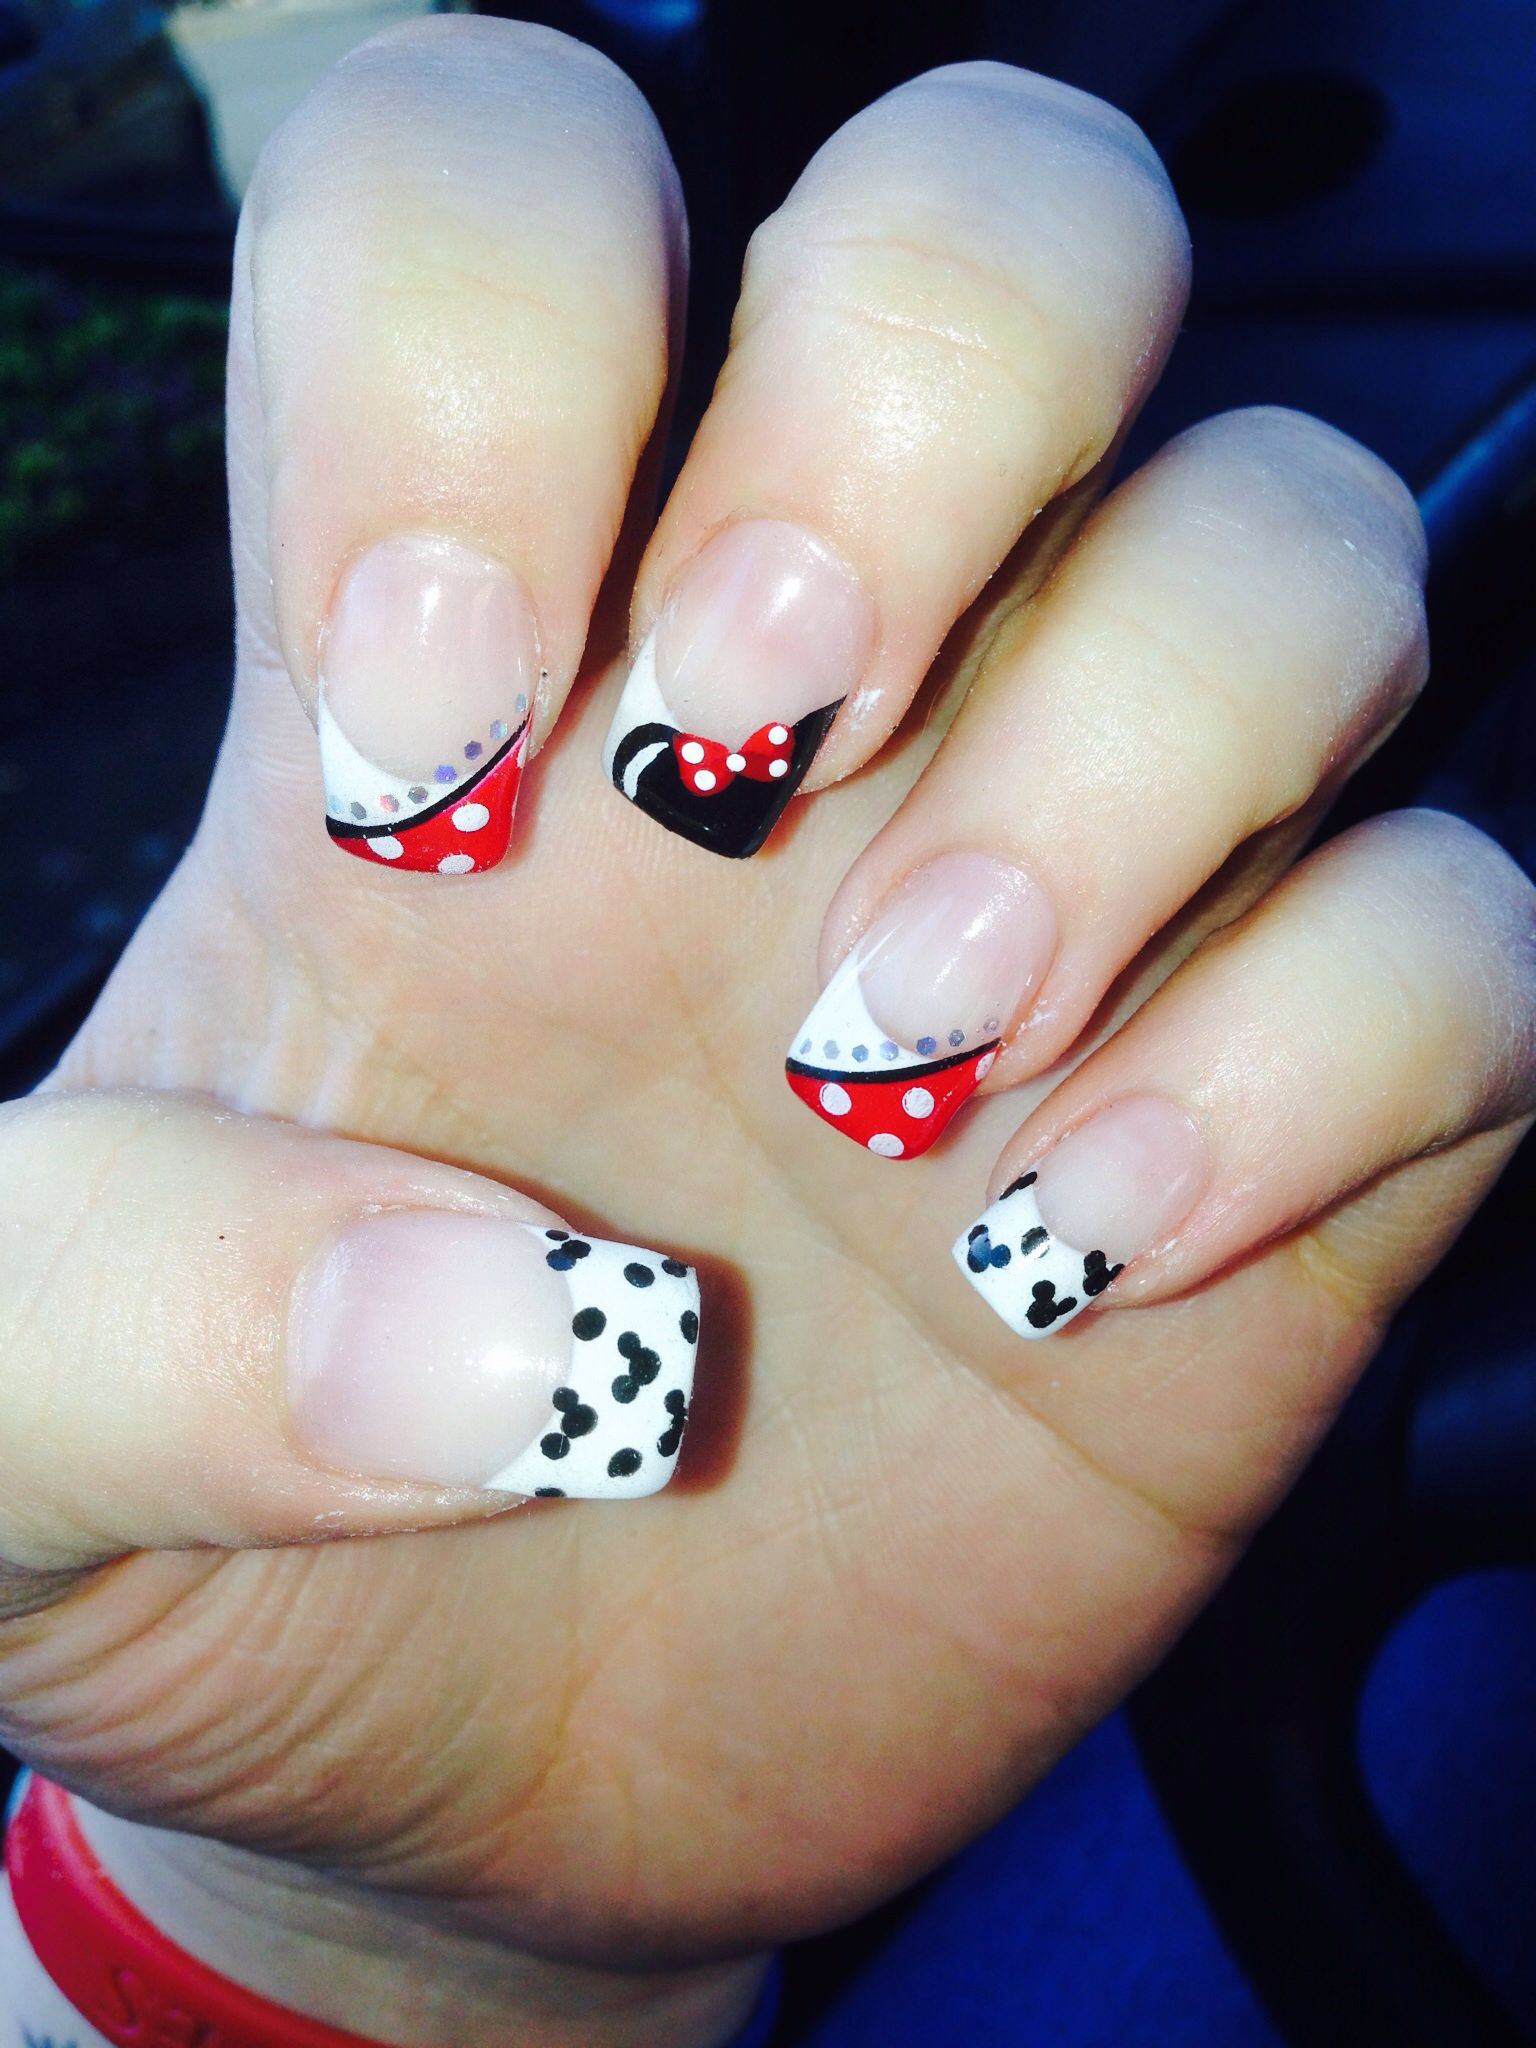 Disney Nail Art Minnie Mouse | Nails | Pinterest | Diseños de uñas ...